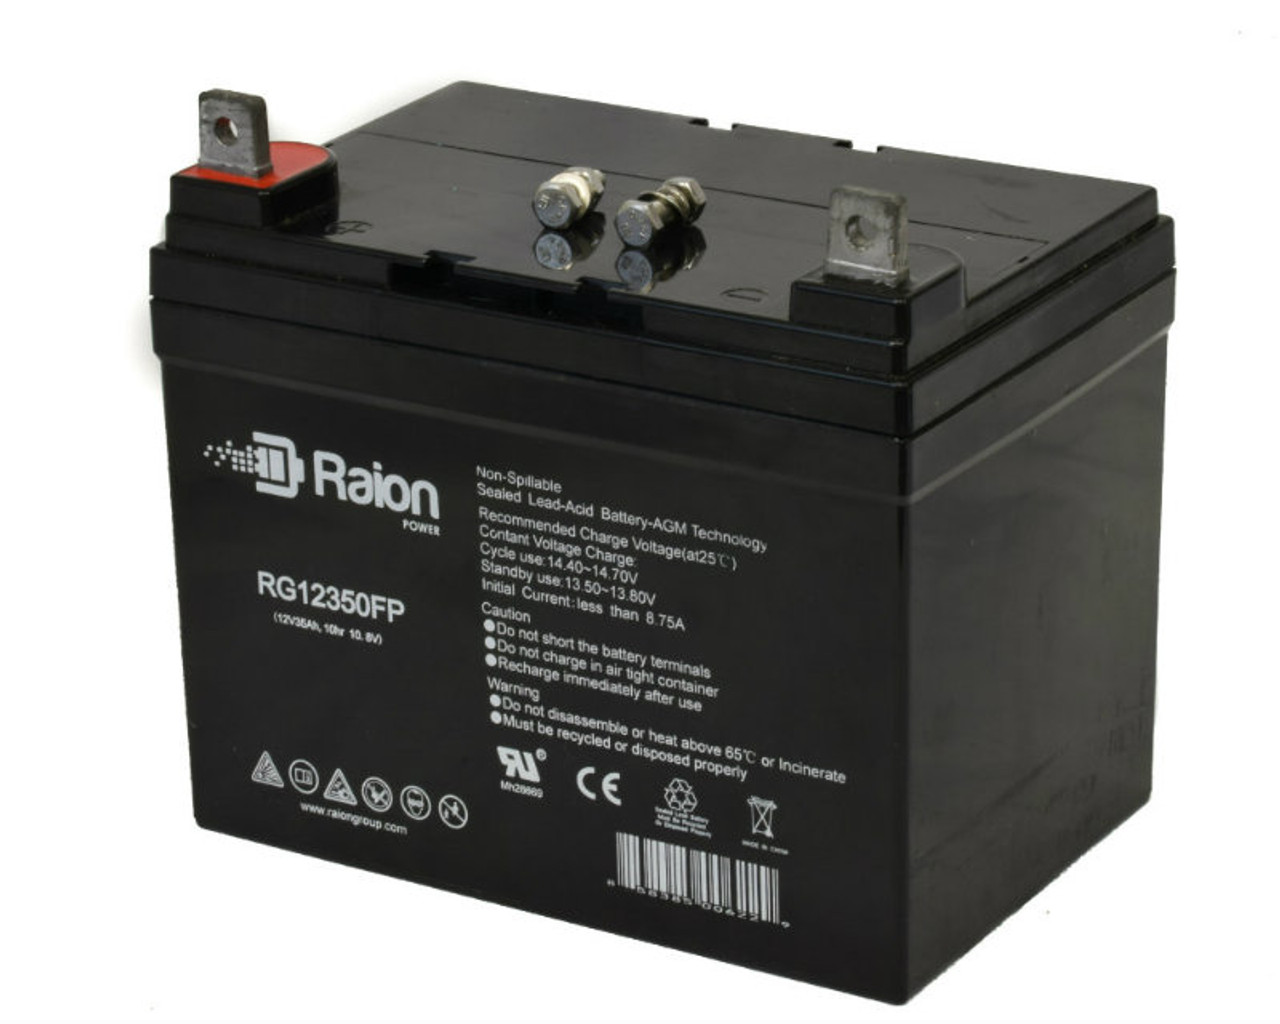 RG12350FP Sealed Lead Acid Battery Pack For Golden Technology Companion II GC440 Mobility Scooter